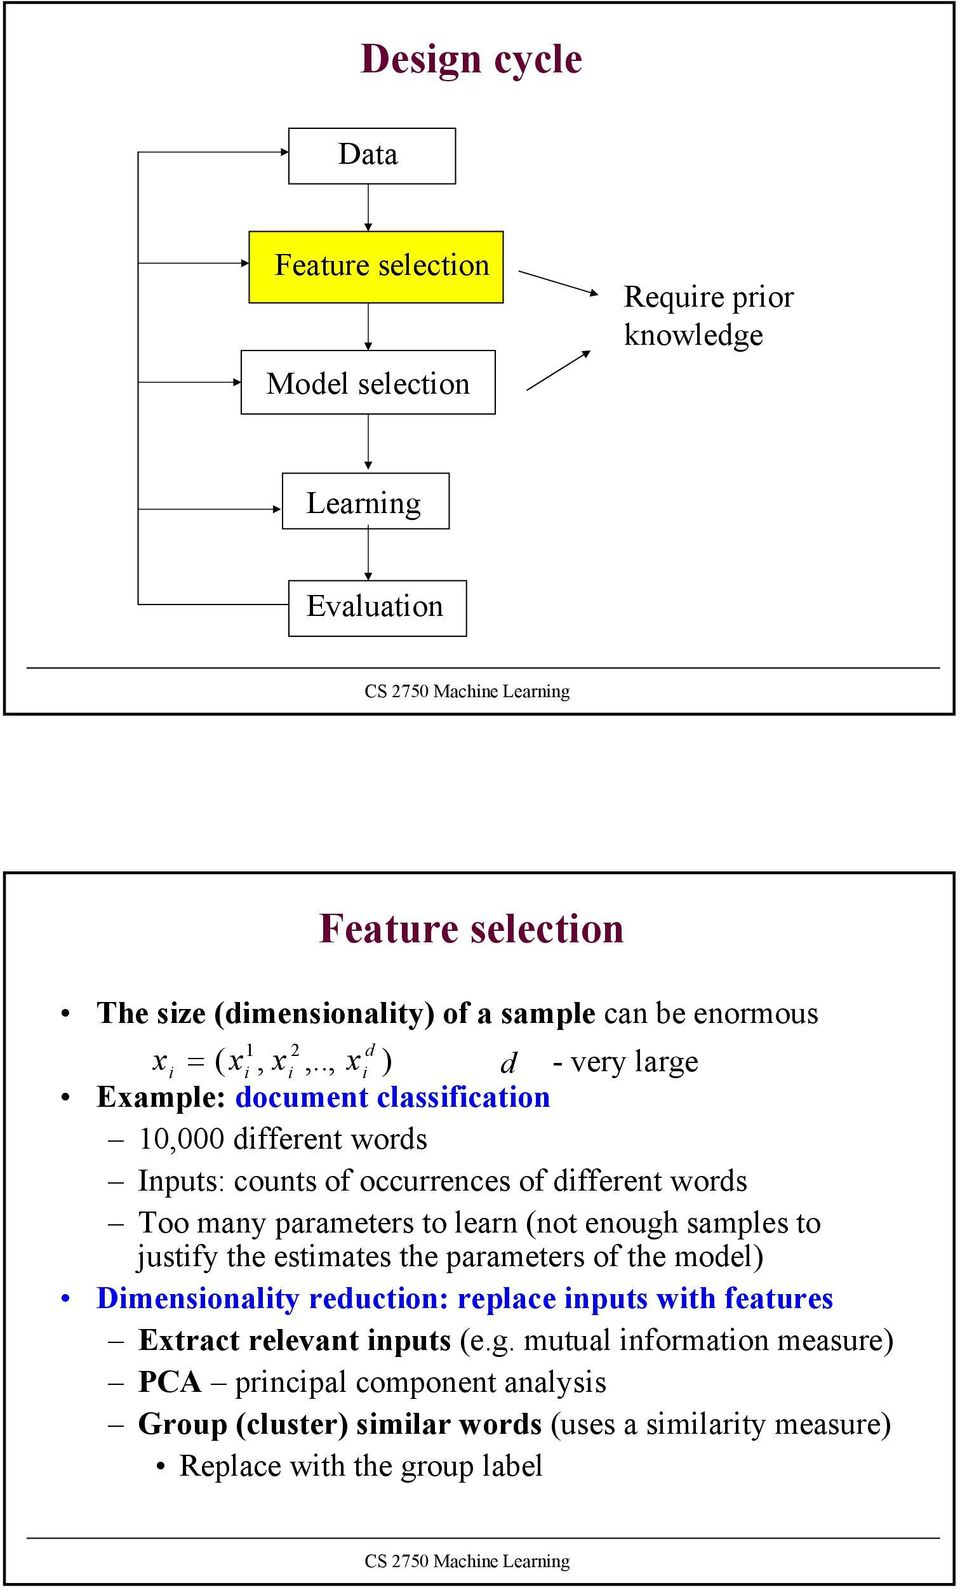 ., x d - very large Example: document classfcaton 10,000 dfferent words Inputs: counts of occurrences of dfferent words Too many parameters to learn